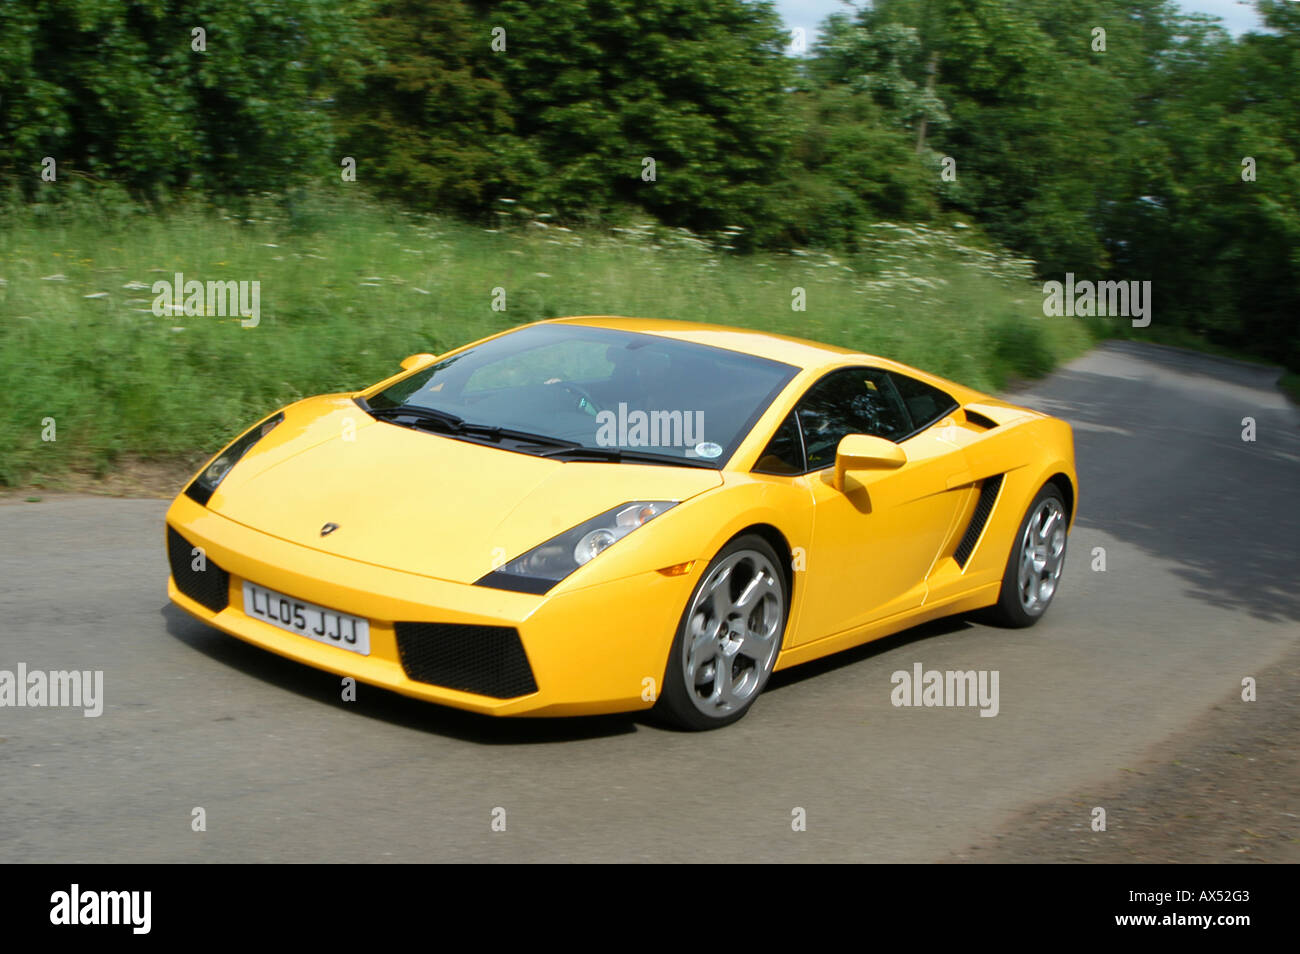 lamborghini gallardo yellow images galleries with a bite. Black Bedroom Furniture Sets. Home Design Ideas